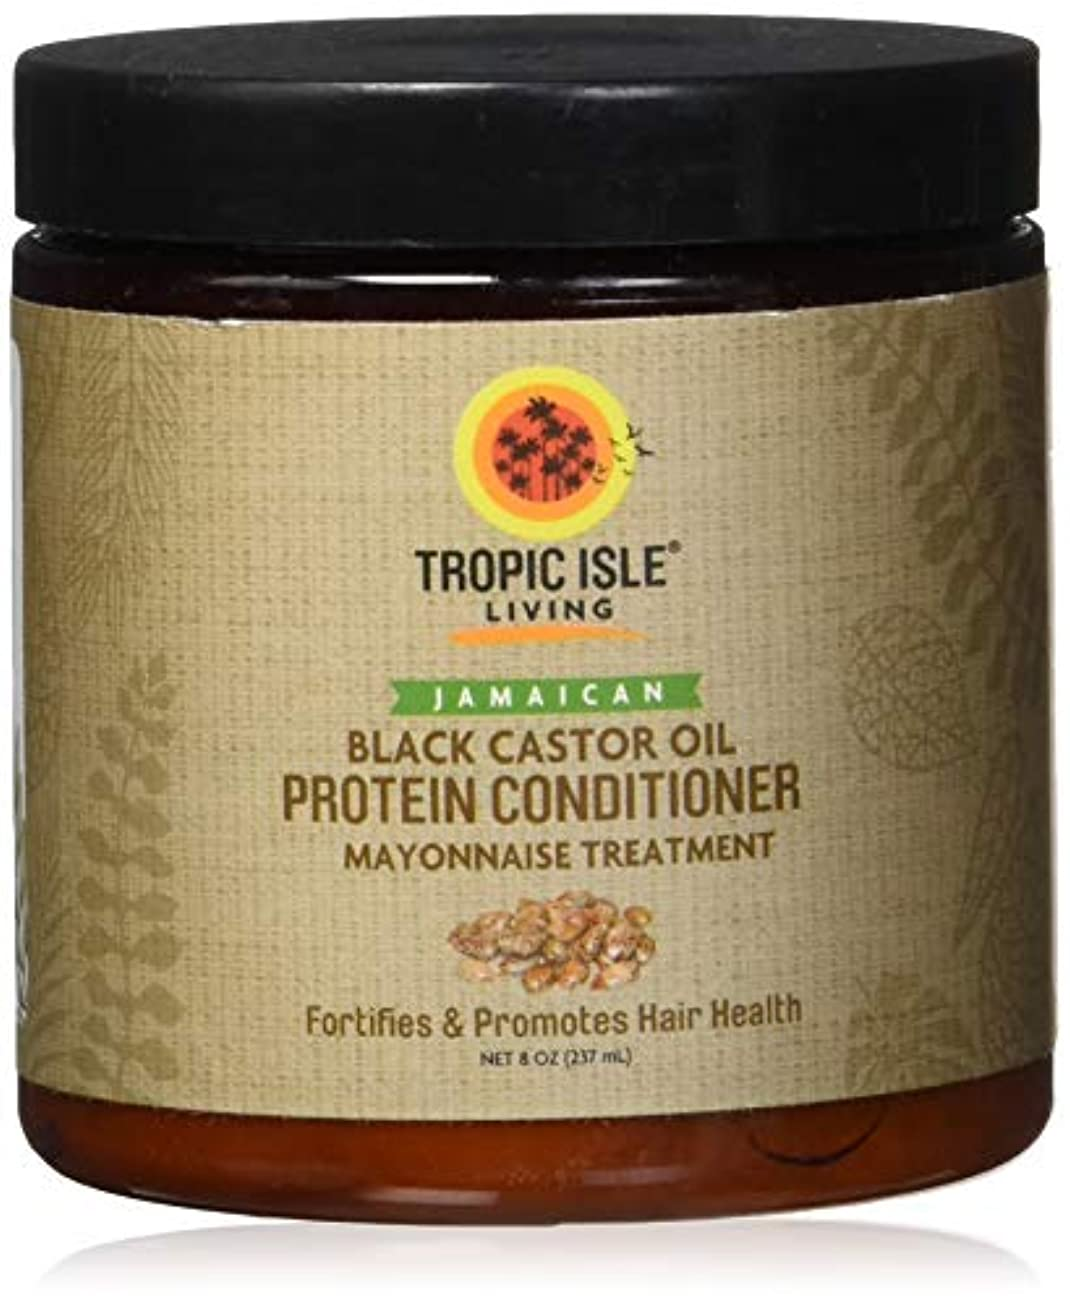 Jamaican Black Castor Oil Protein Hair Conditioner by Tropic Isle Living